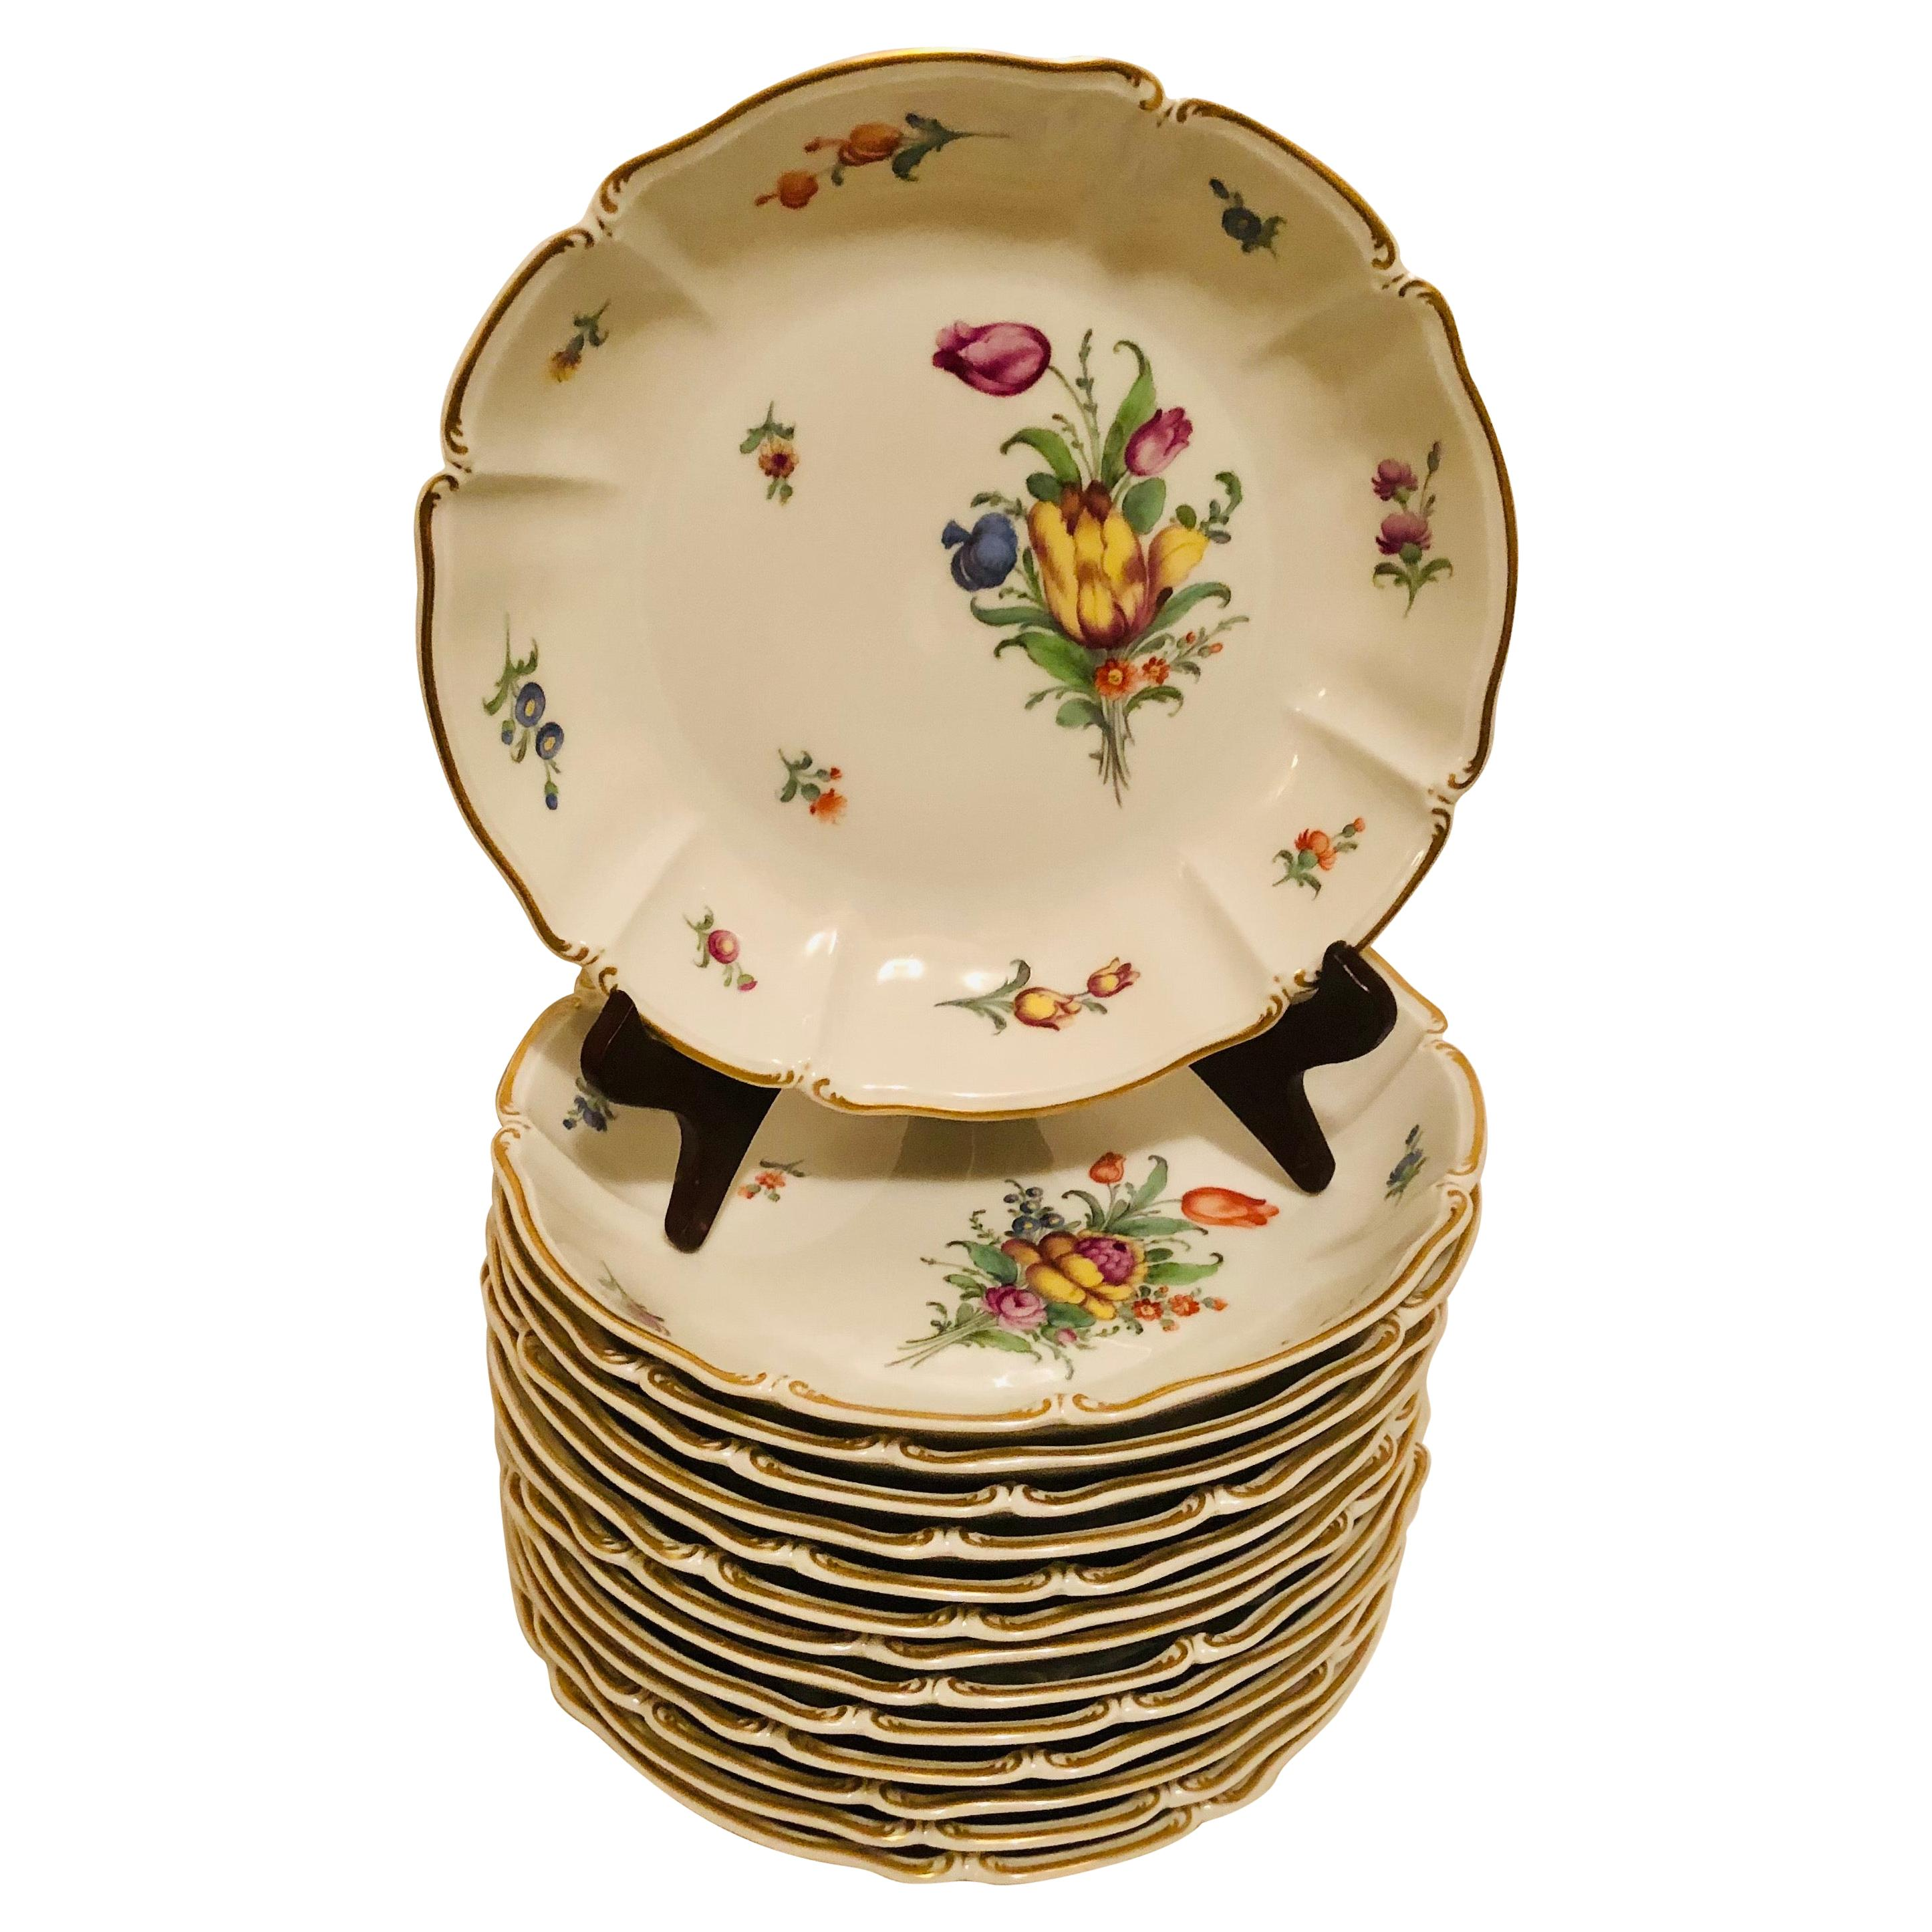 Set of 14 Nymphenburg Soup Bowls Each Painted With a Different Flower Bouquet